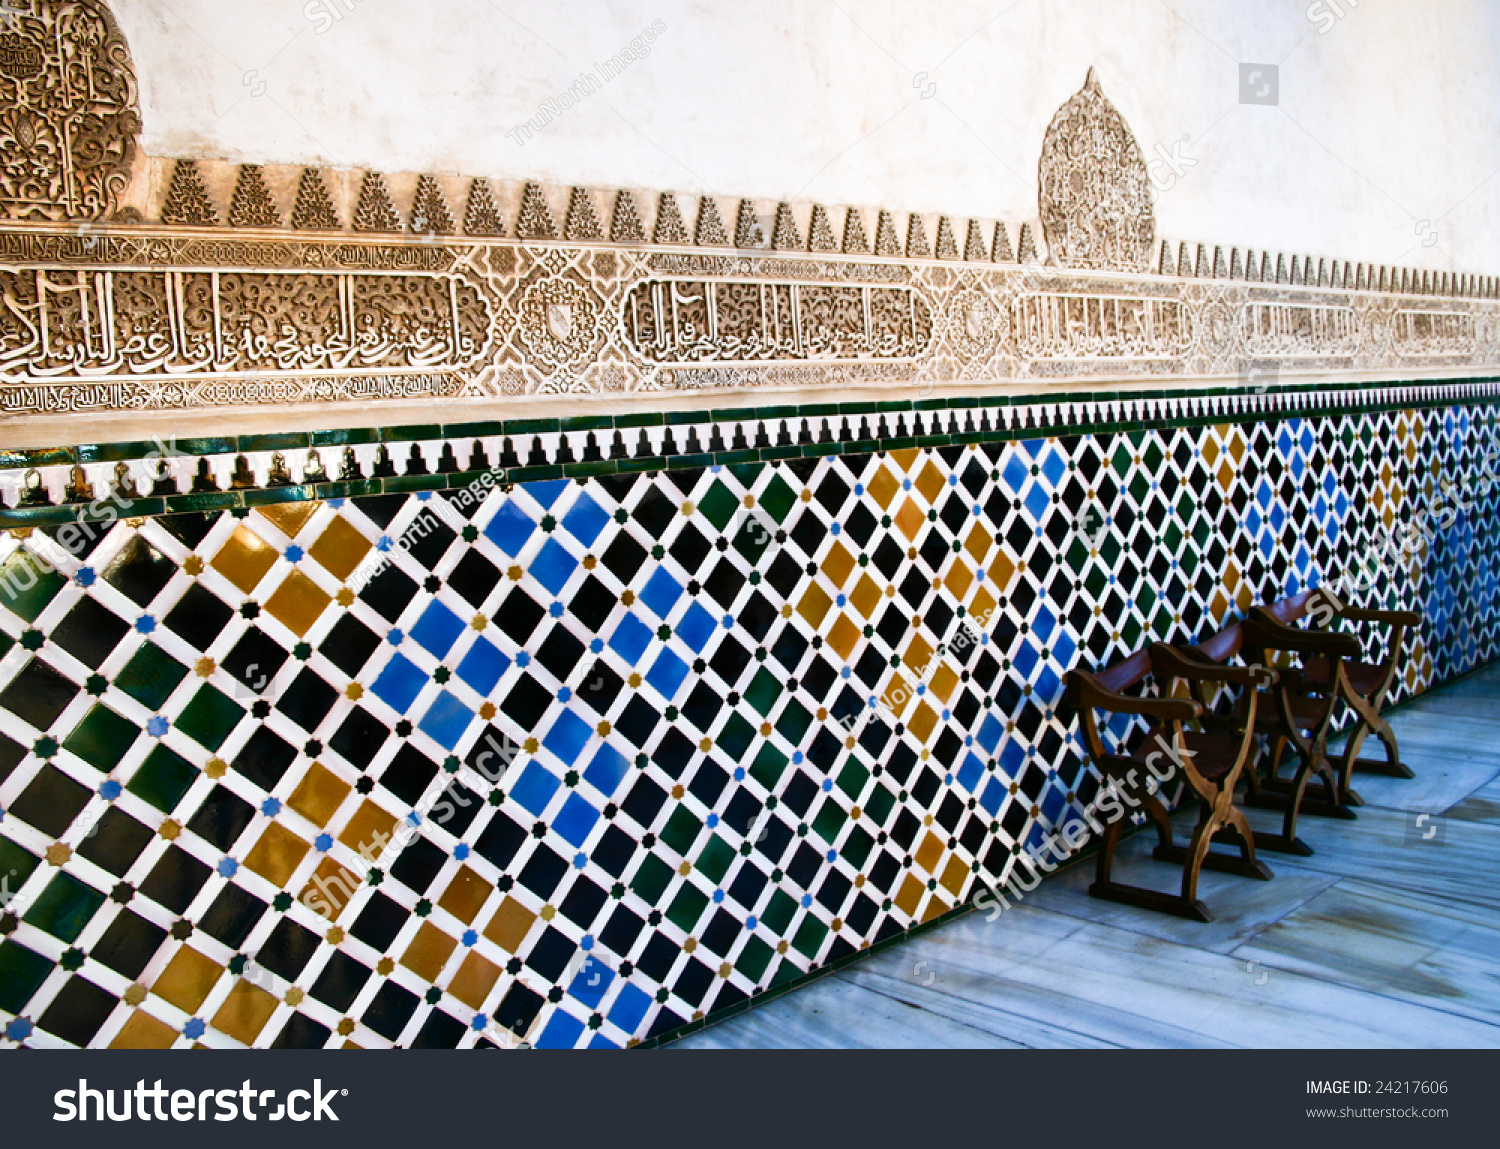 Bench Next To Mosaic Wall In The Court Of The Myrtles (Patio De Los Arrayanes...